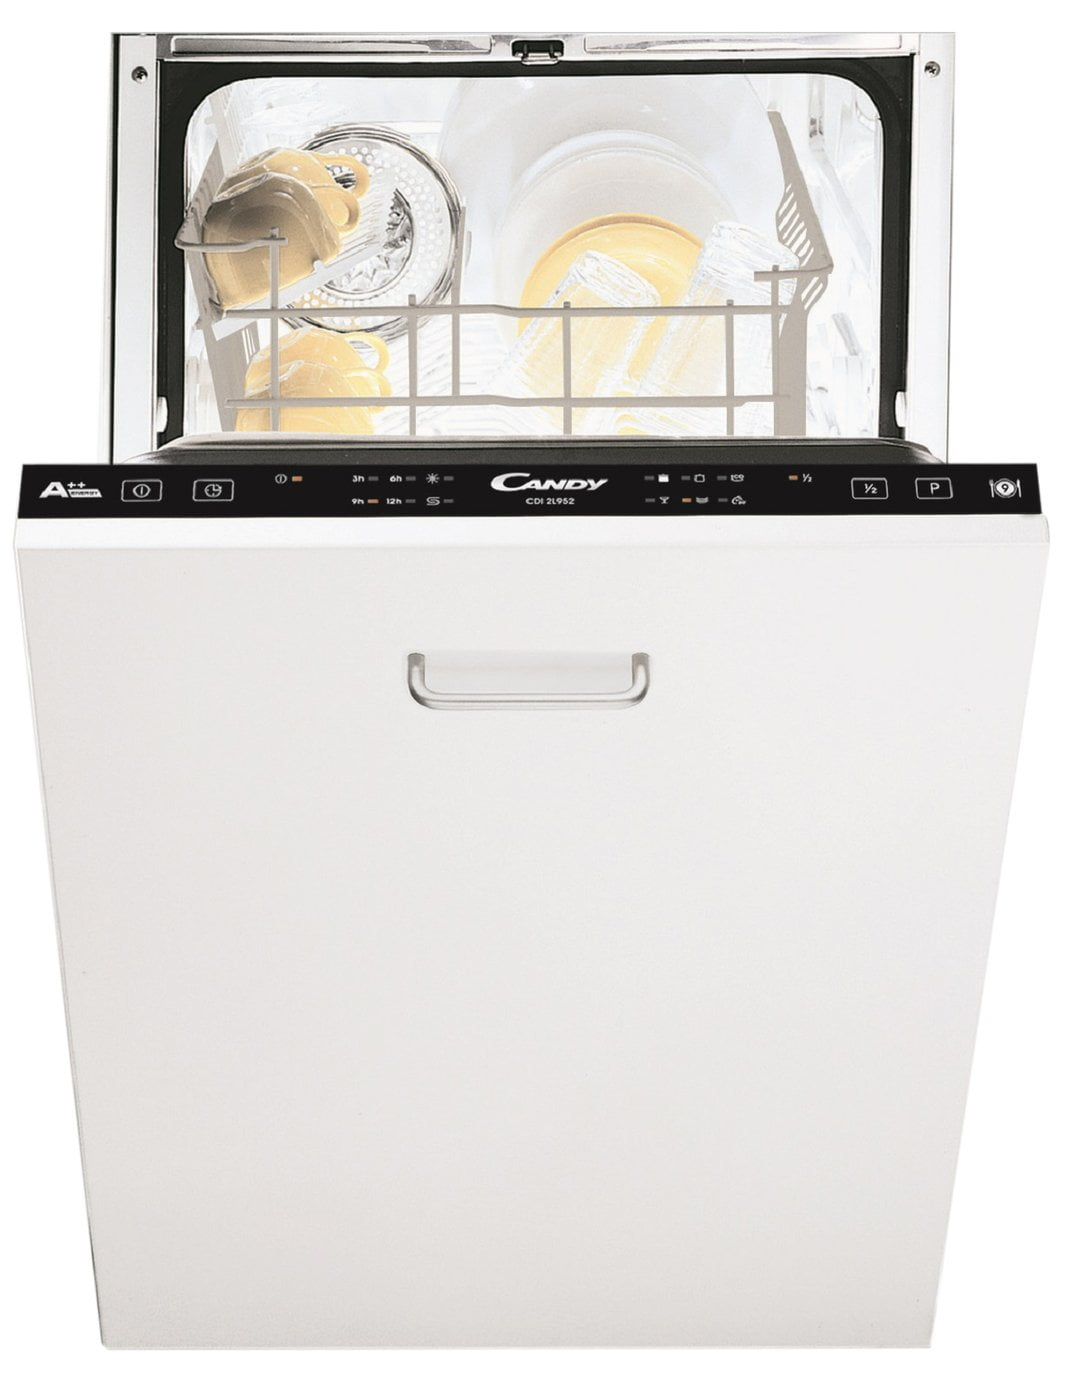 Candy CDIL952 Integrated Slimline Dishwasher - White